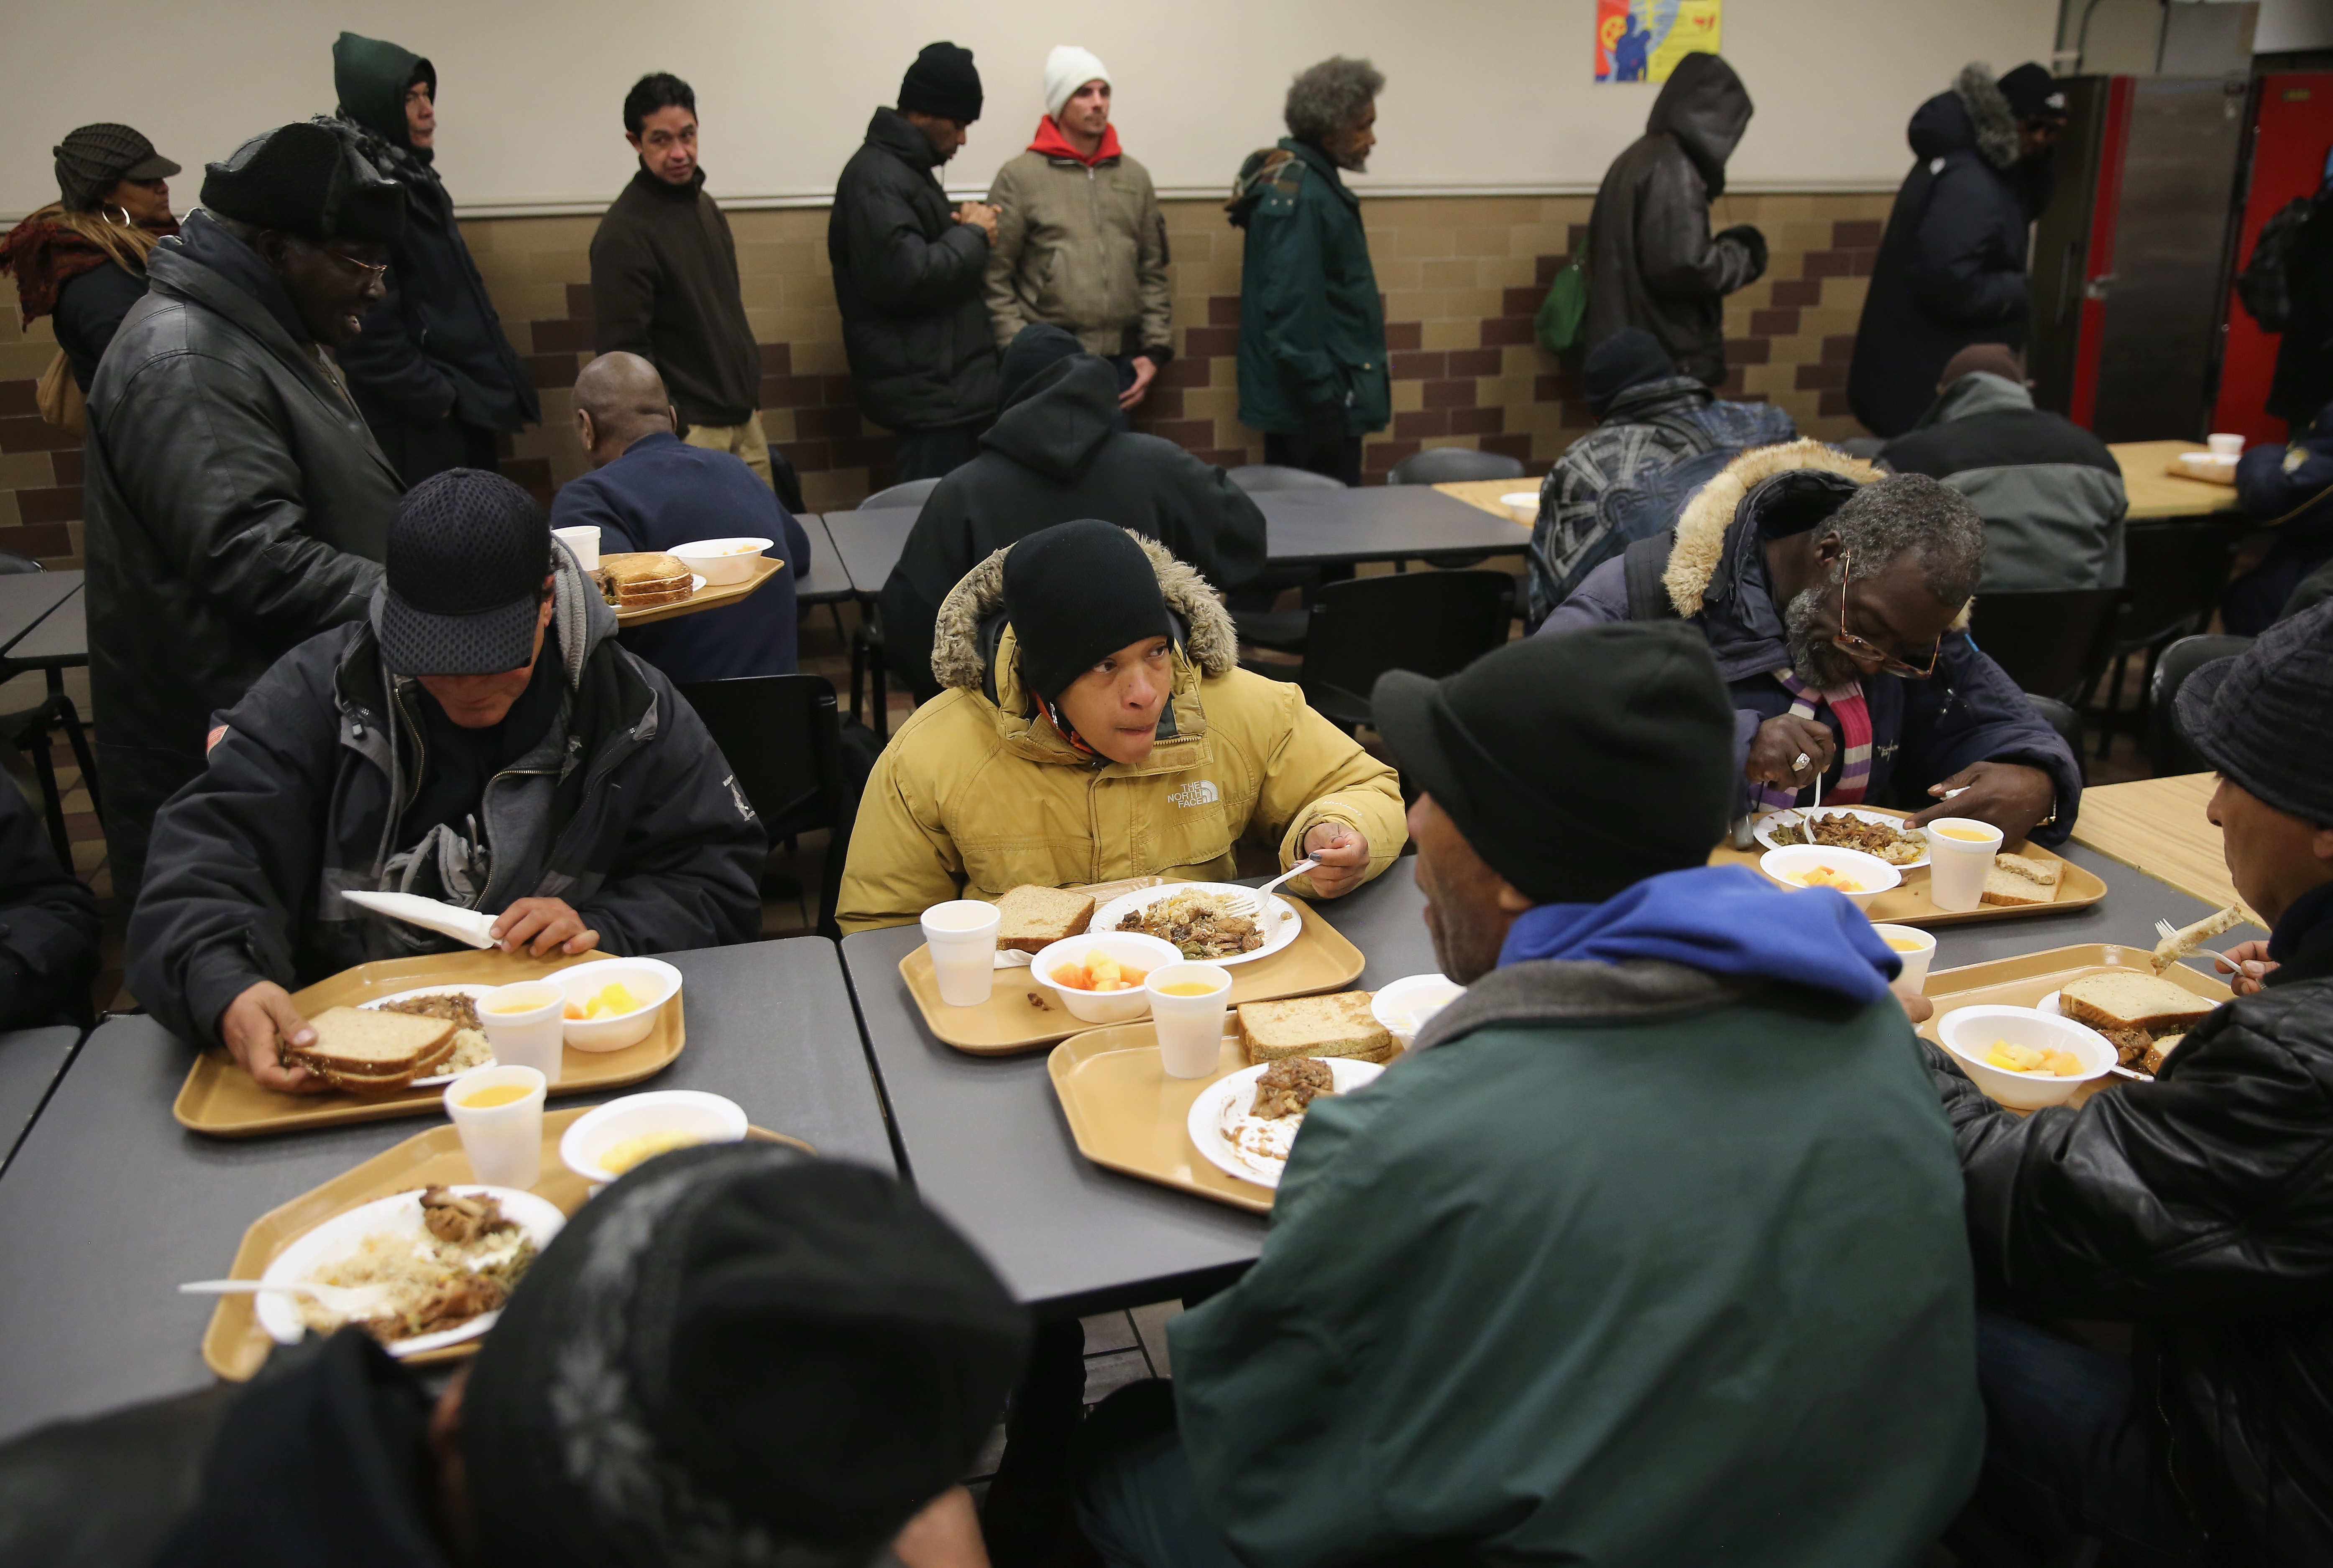 soup kitchen in nyc - room image and wallper 2017